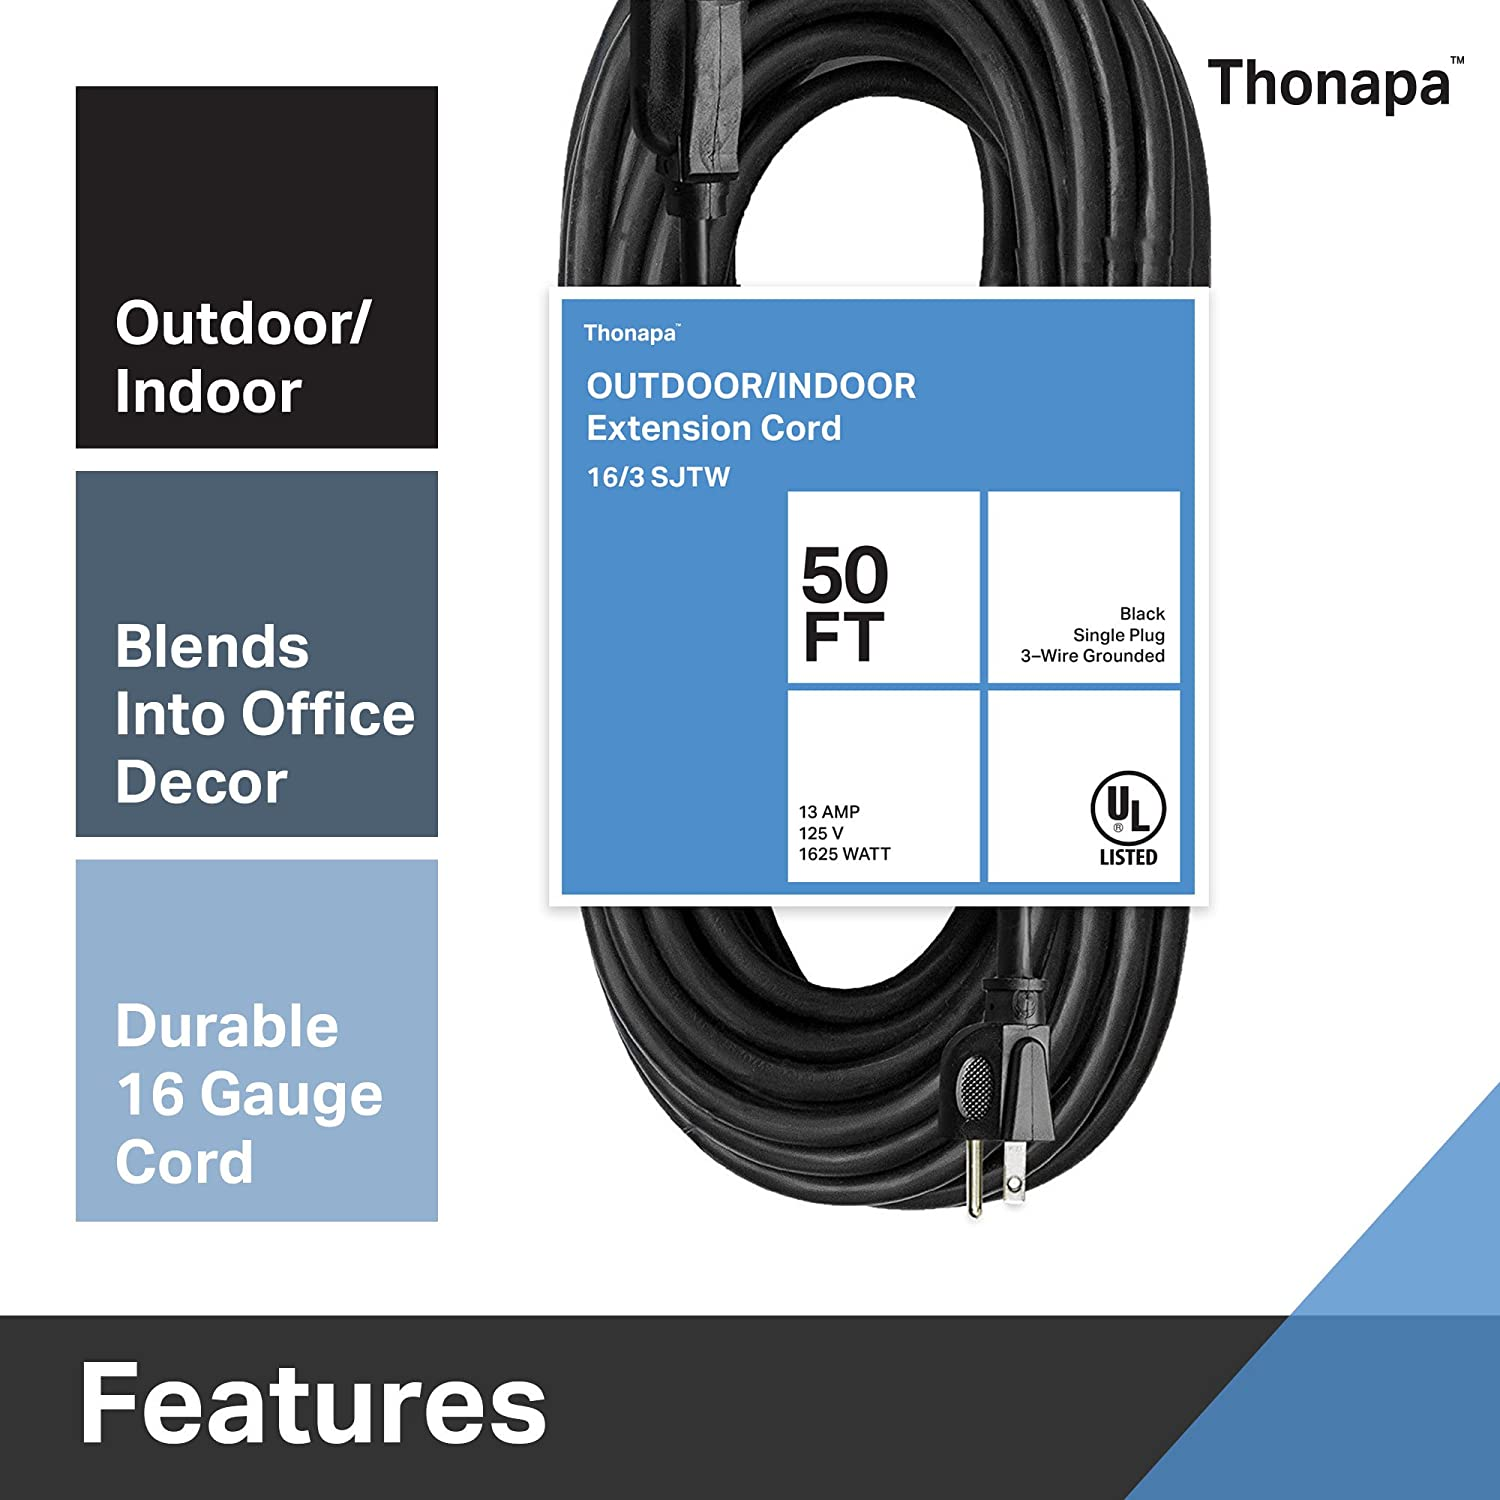 Thonapa 10 Ft Black Extension Cord 16//3 Electrical Cable with 3 Prong Grounded Plug for Safety TH-163B10